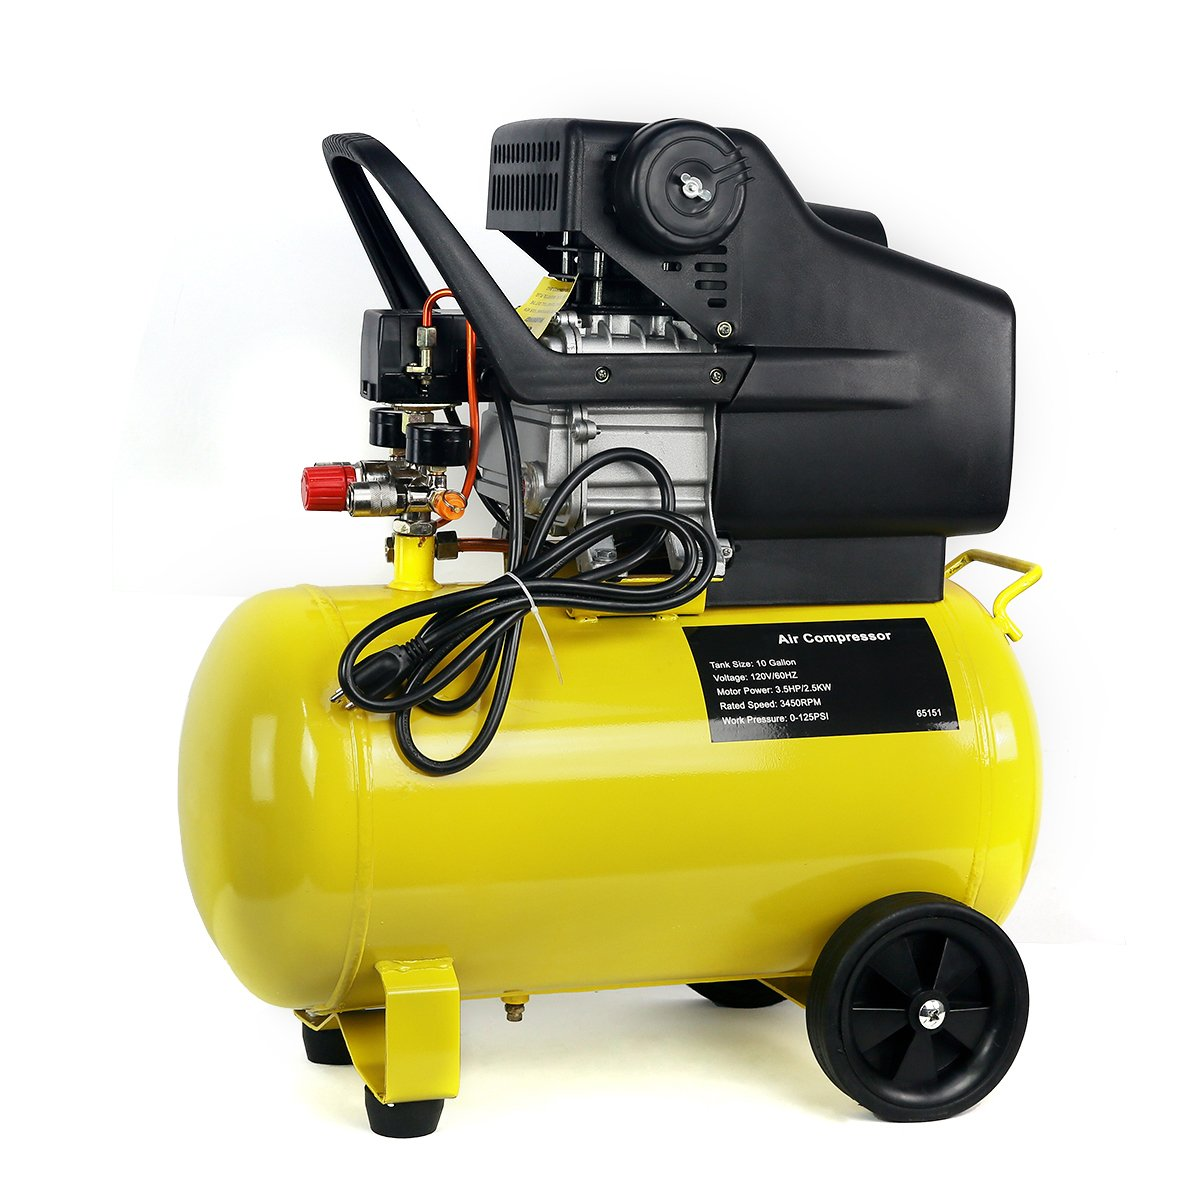 3.5HP 10-Gallon Pneumatic Portable Air Compressor With Tank XtremepowerUS 65151